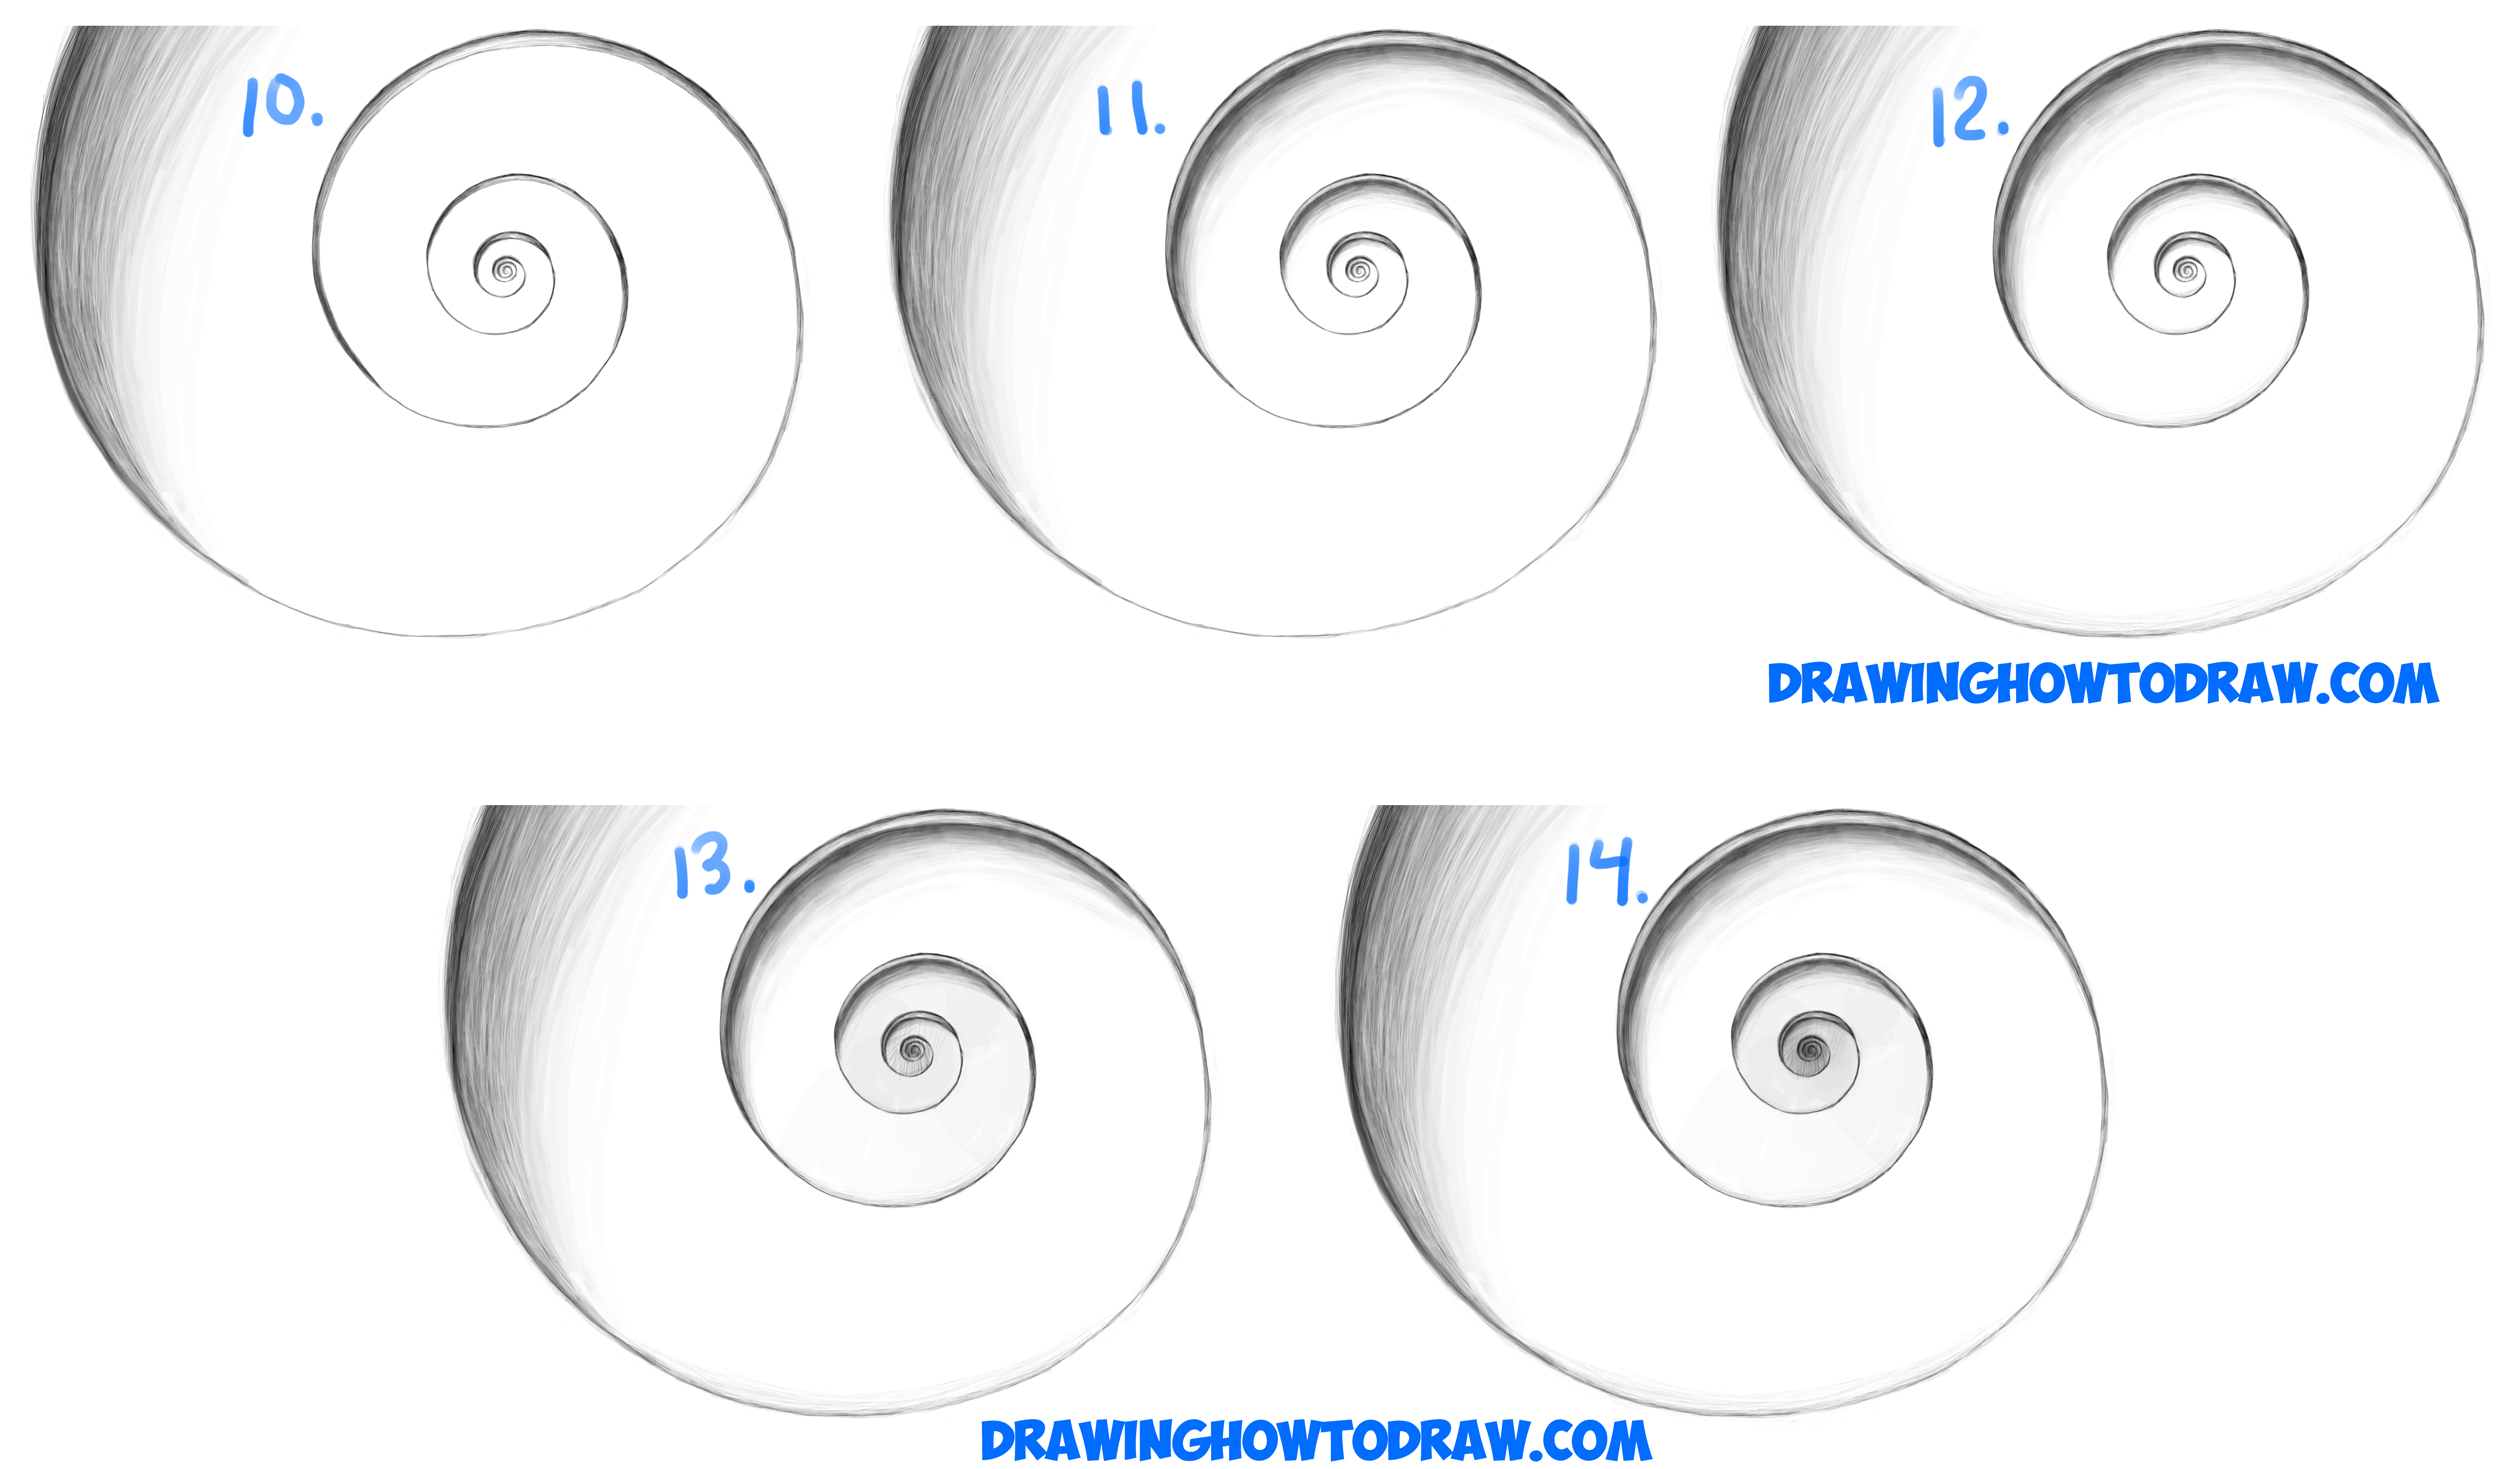 Drawn optical illusion beginner Drawing Draw Step How Step